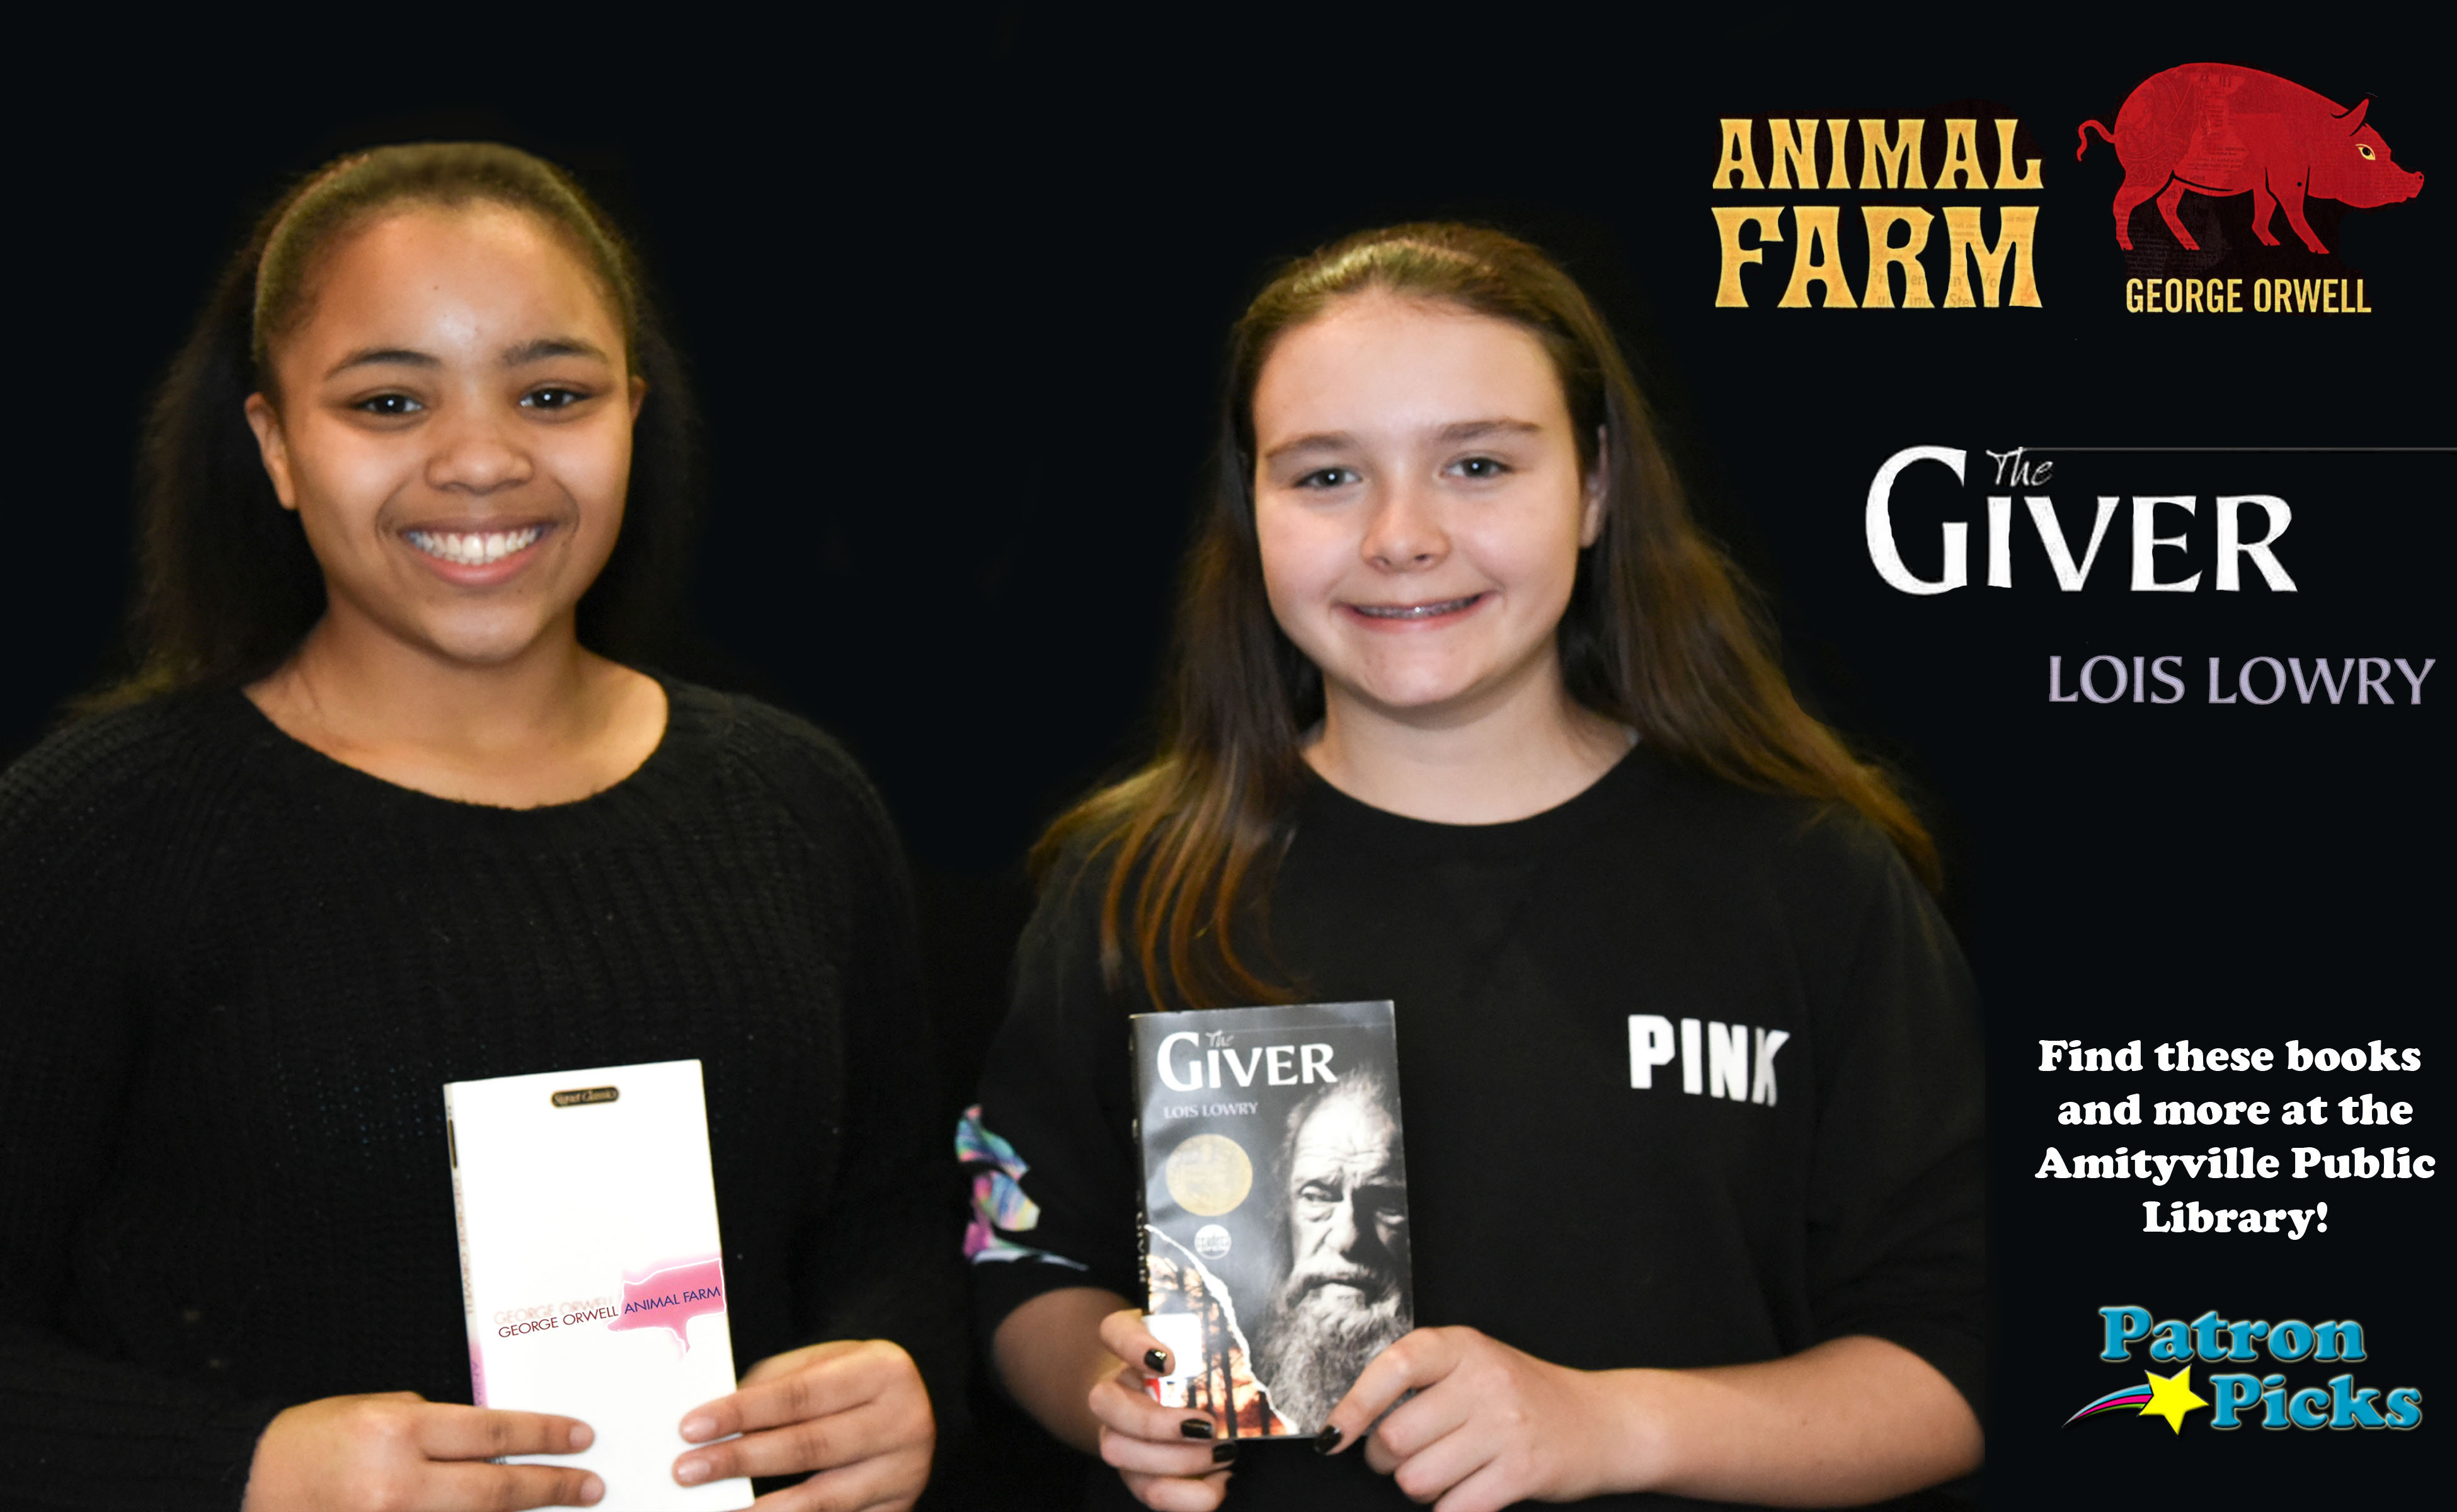 Animal Farm & The Giver